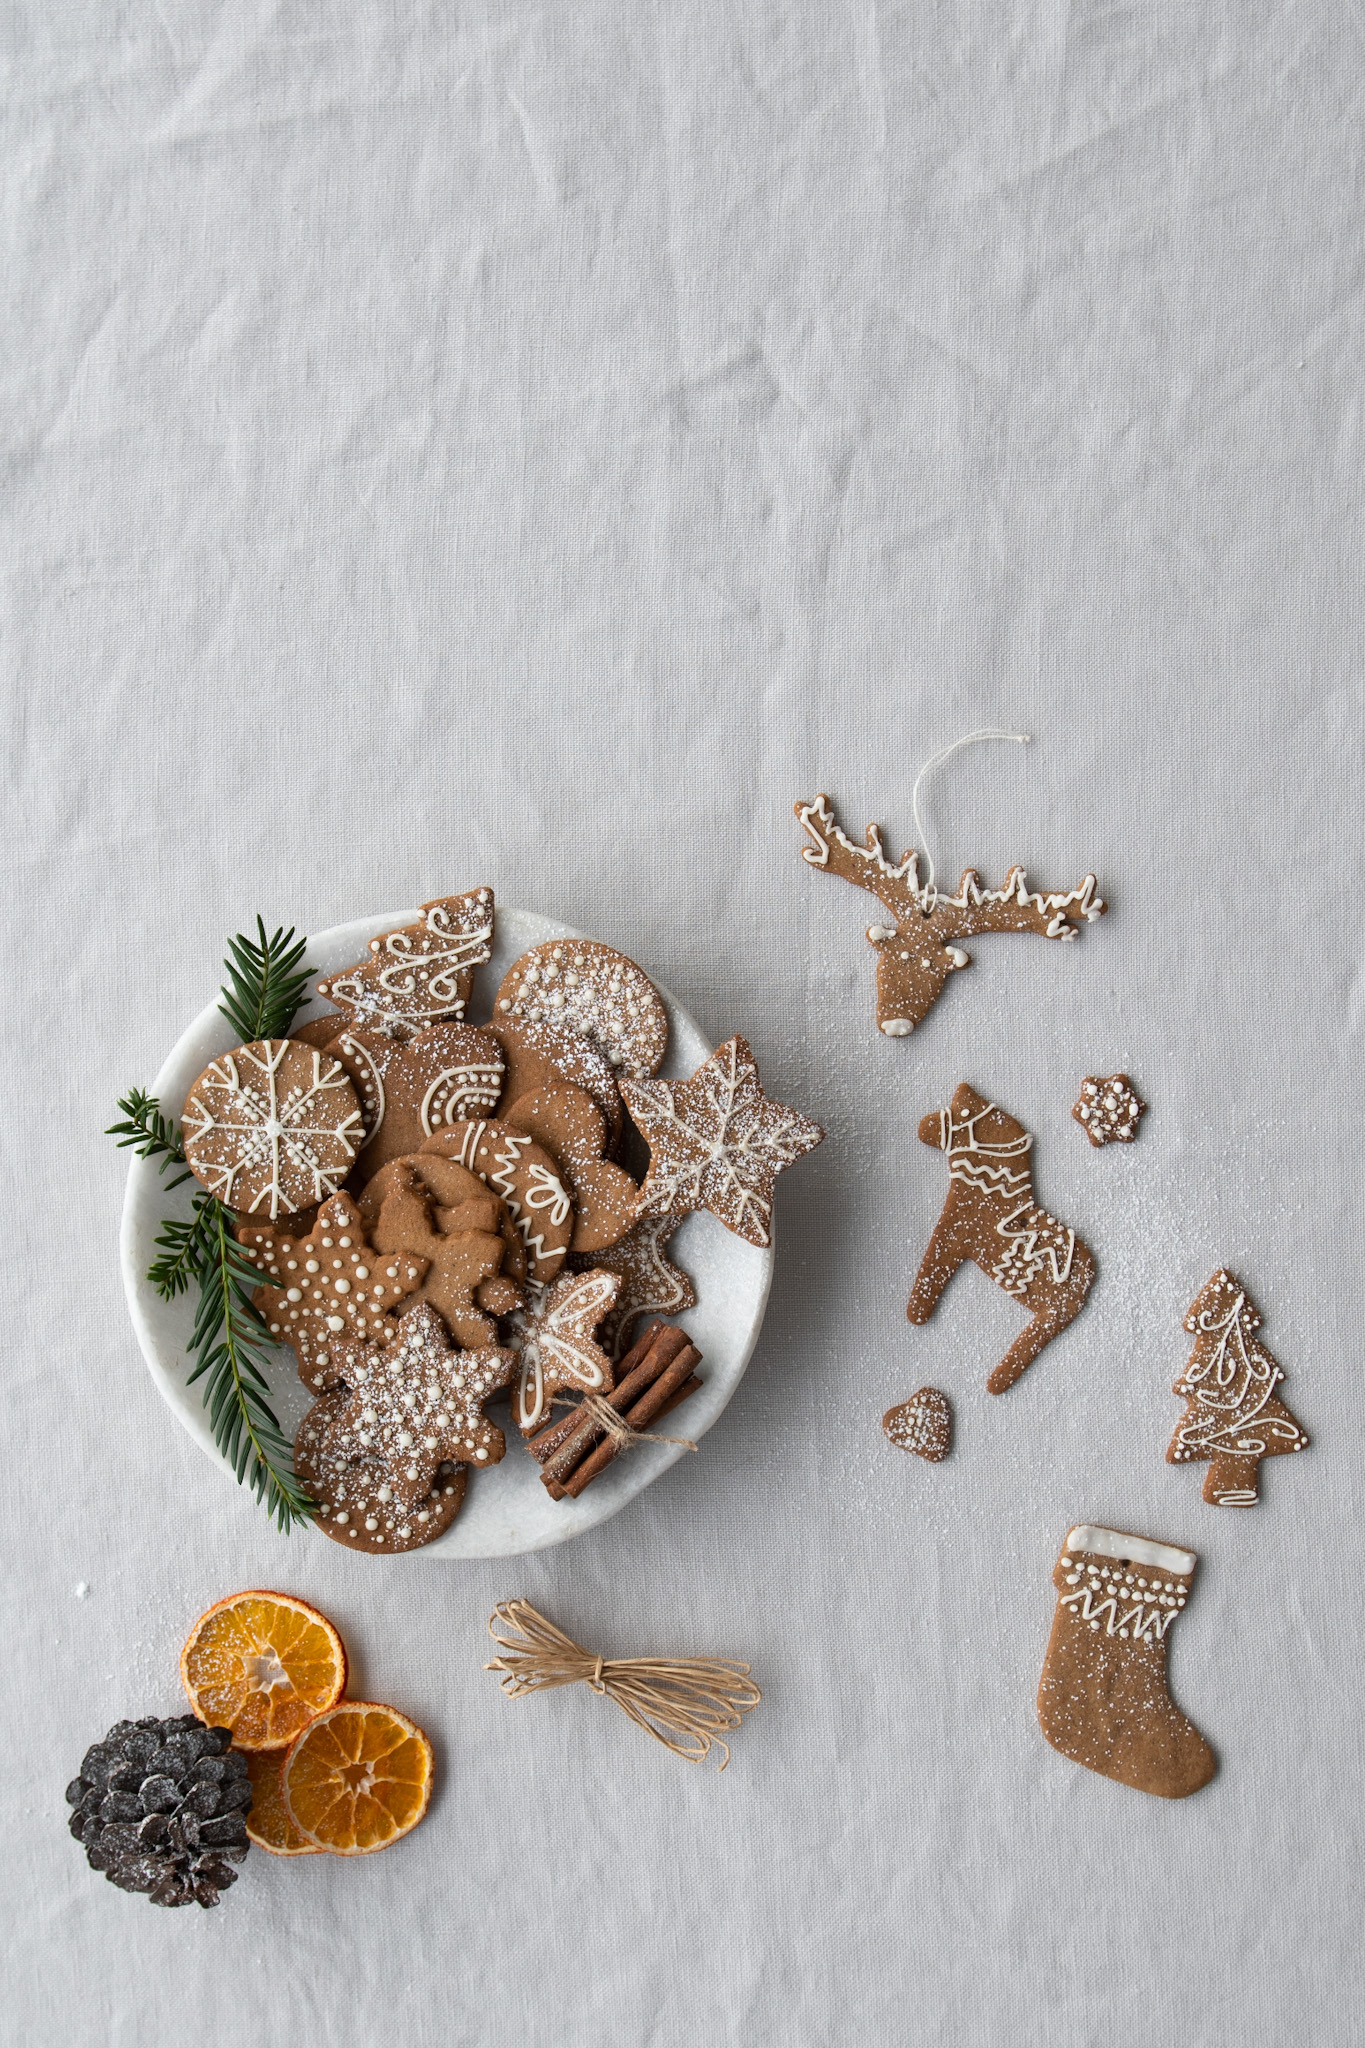 Swedish Gingersnap biscuits